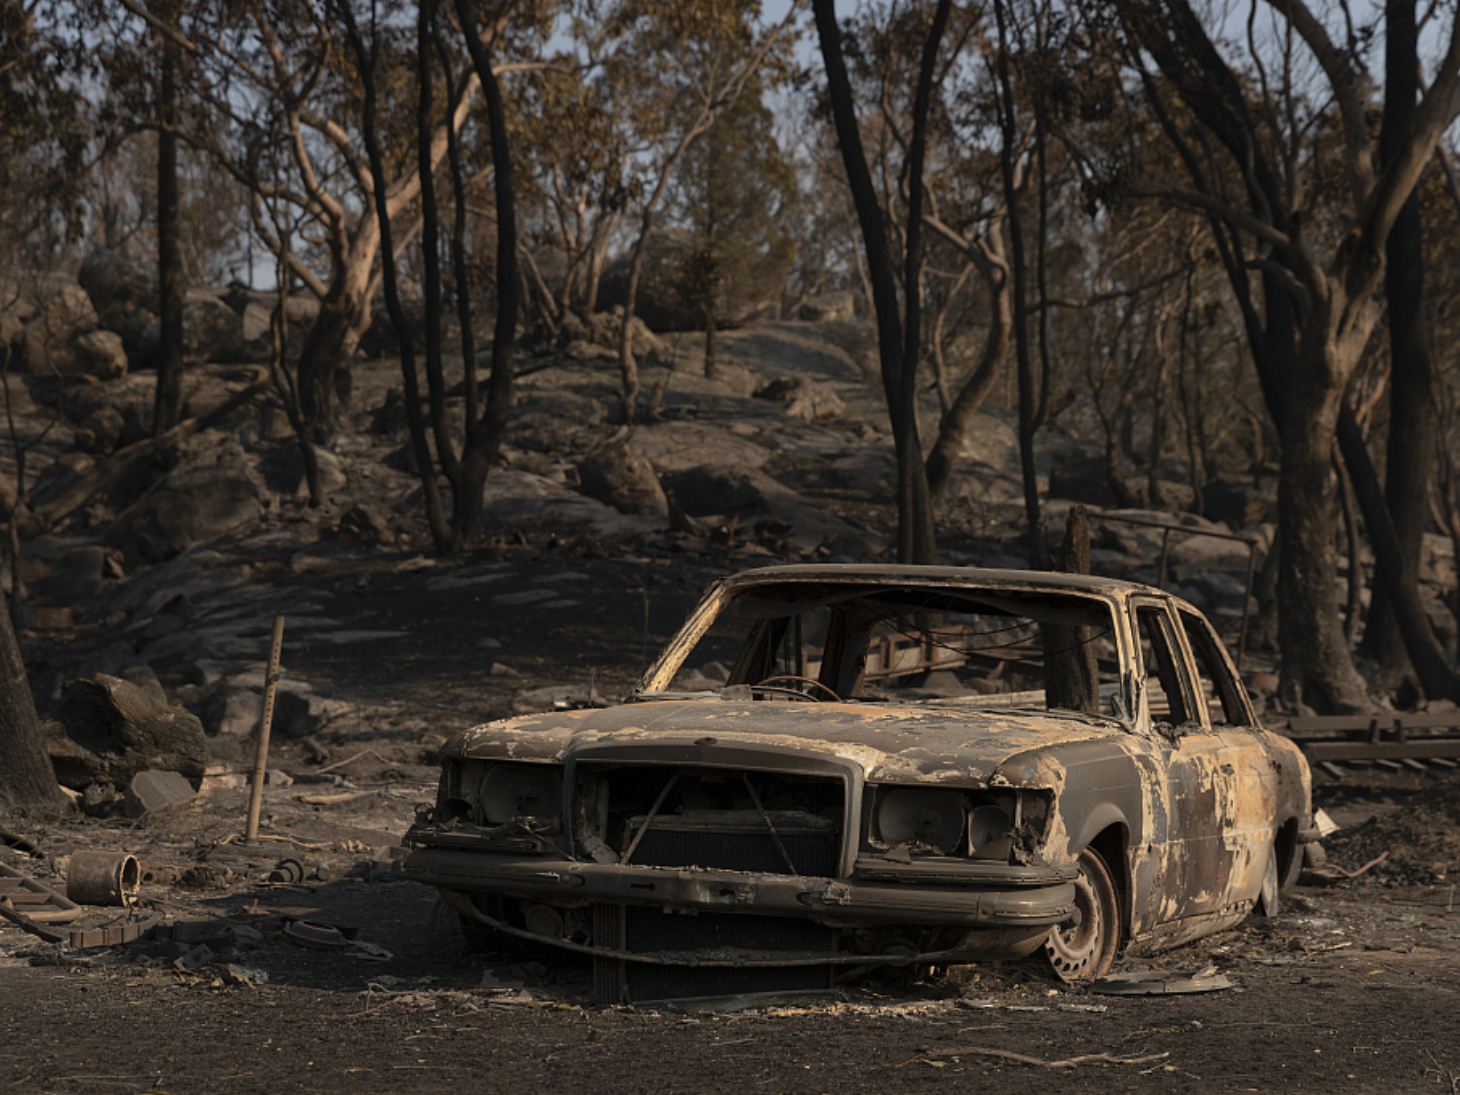 Australian state declares emergency due to wildfires